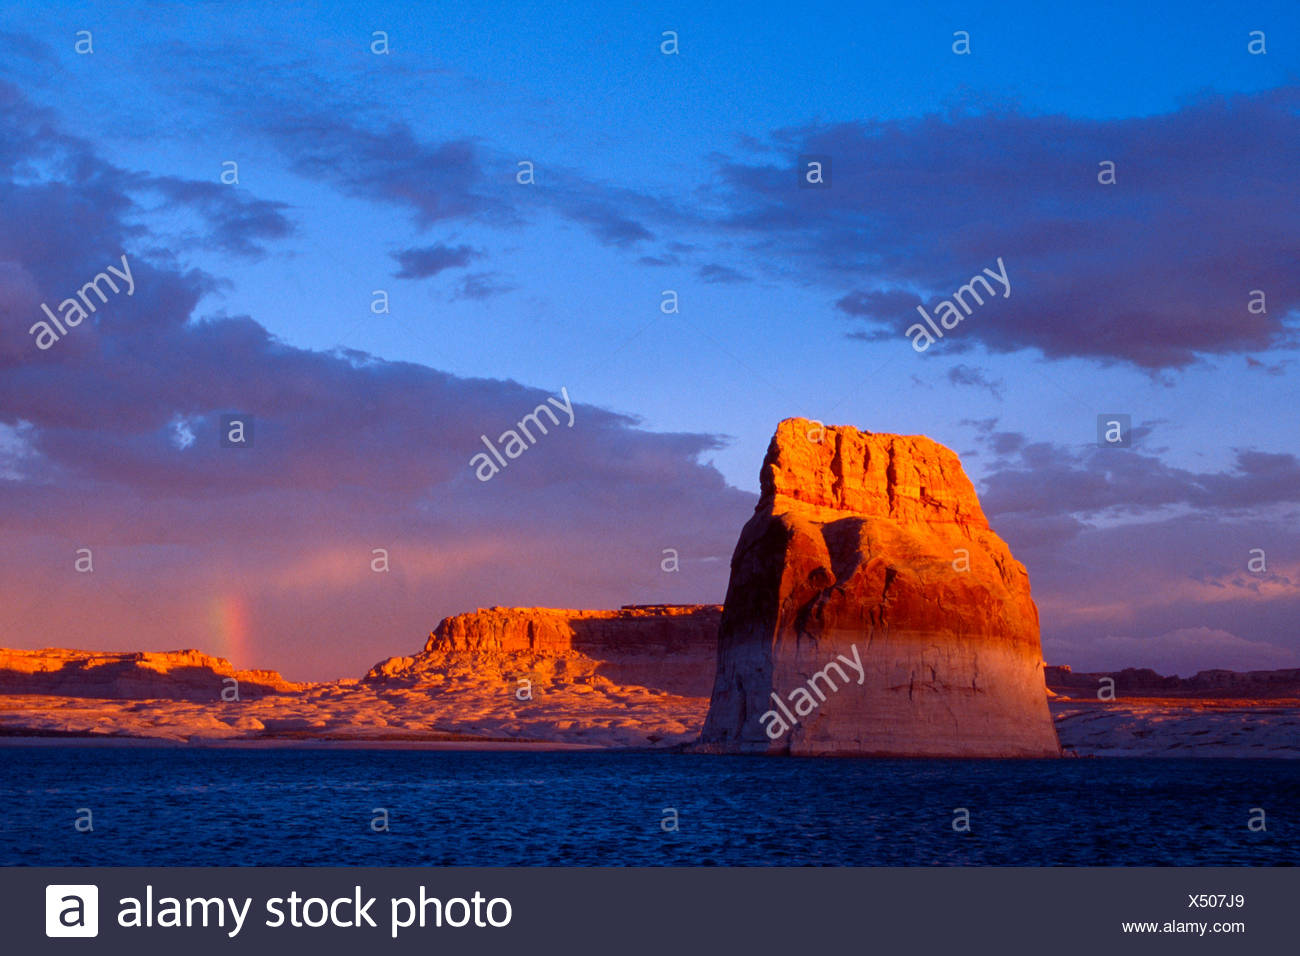 Lone Rock, Glen Canyon Recreation Area, Arizona e Utah, USA, America del Nord Immagini Stock